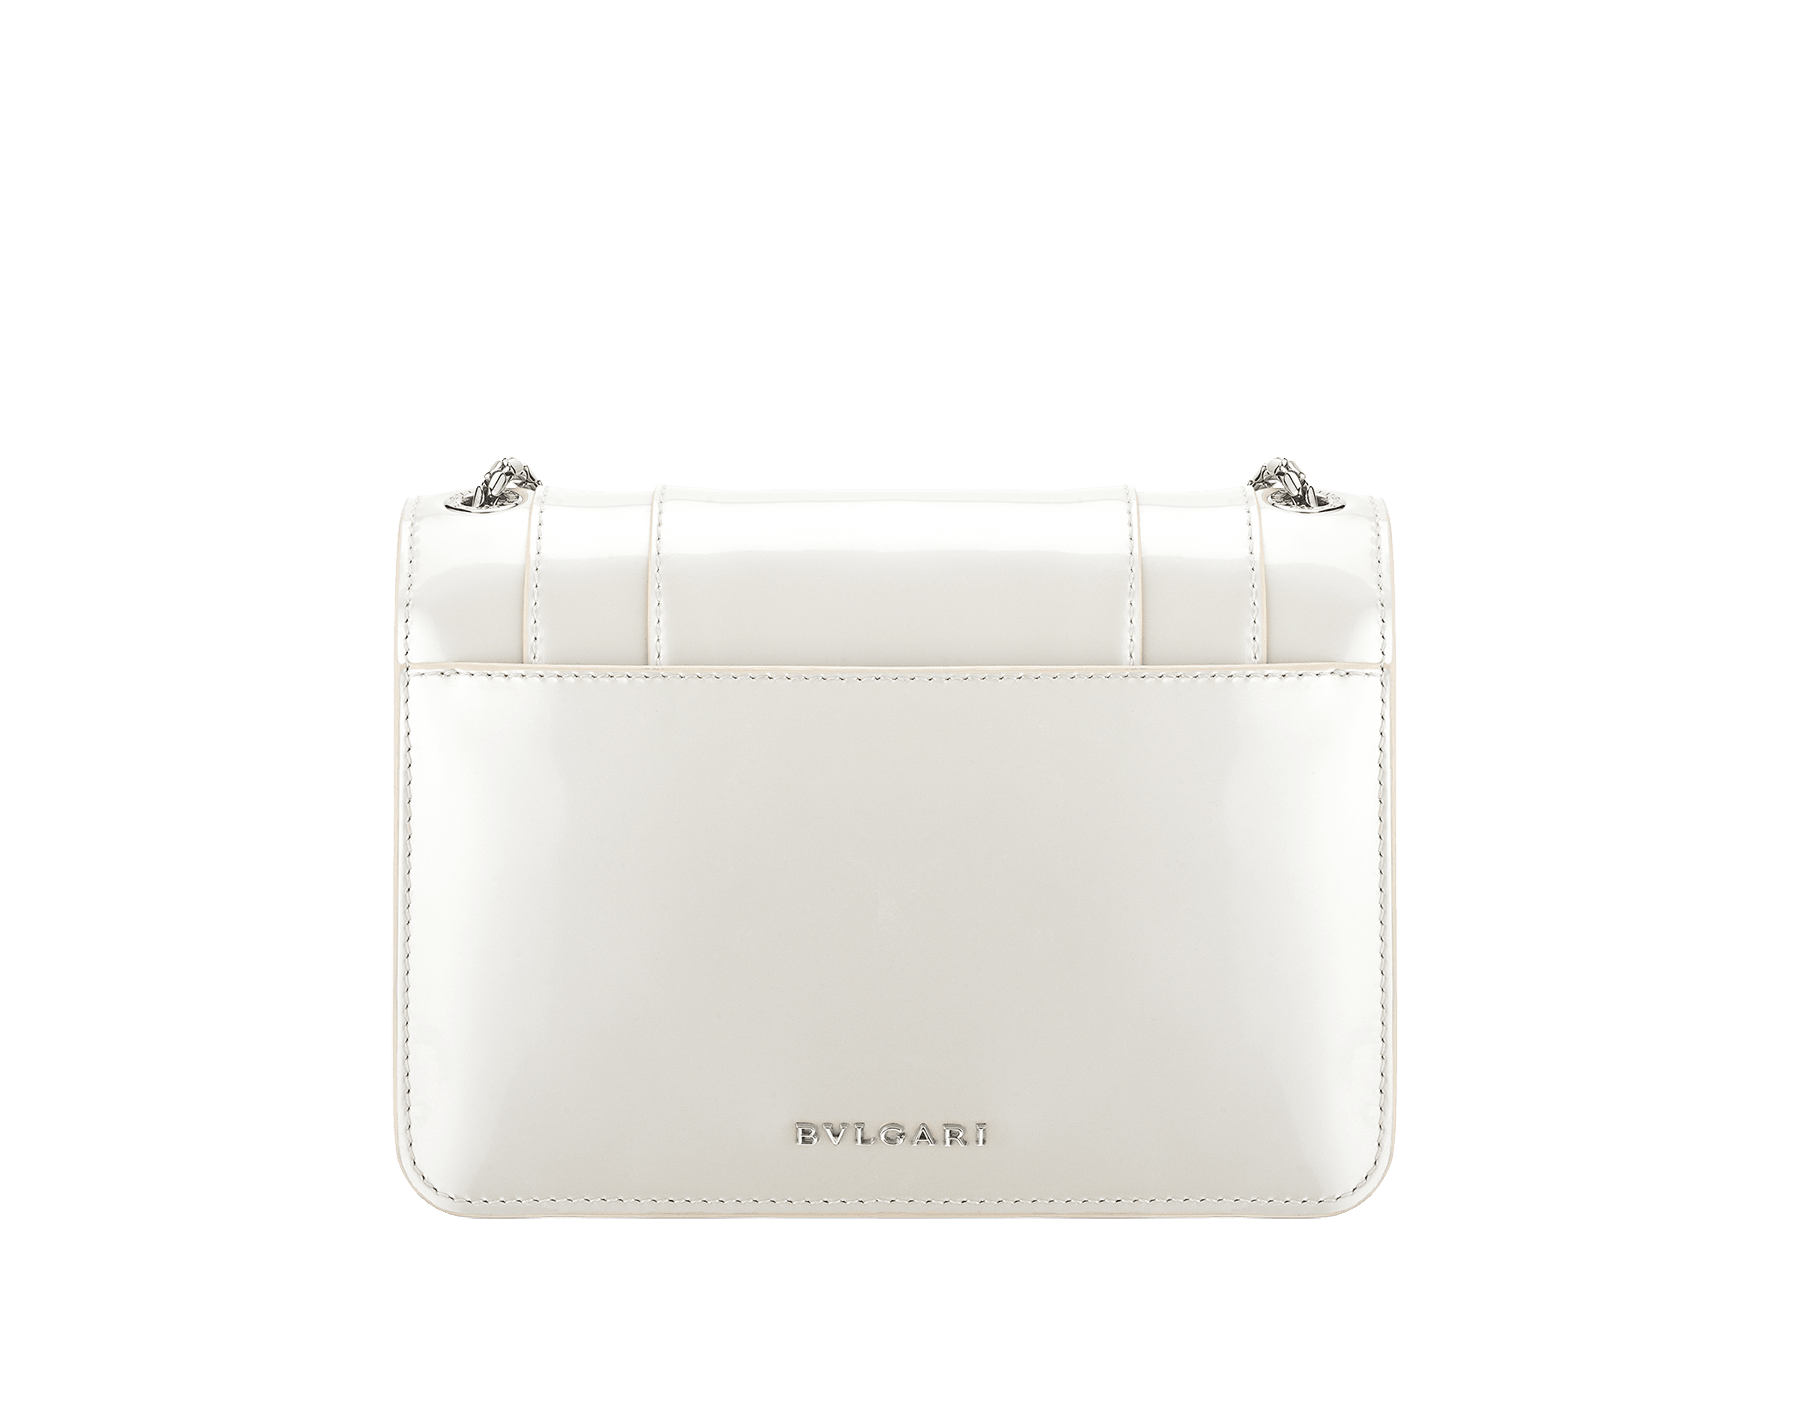 """Serpenti Forever"" crossbody bag in white agate calf leather with a varnished and pearled effect. Iconic snakehead closure in light gold plated brass enriched with black and pearled white agate enamel and black onyx eyes. 289771 image 3"